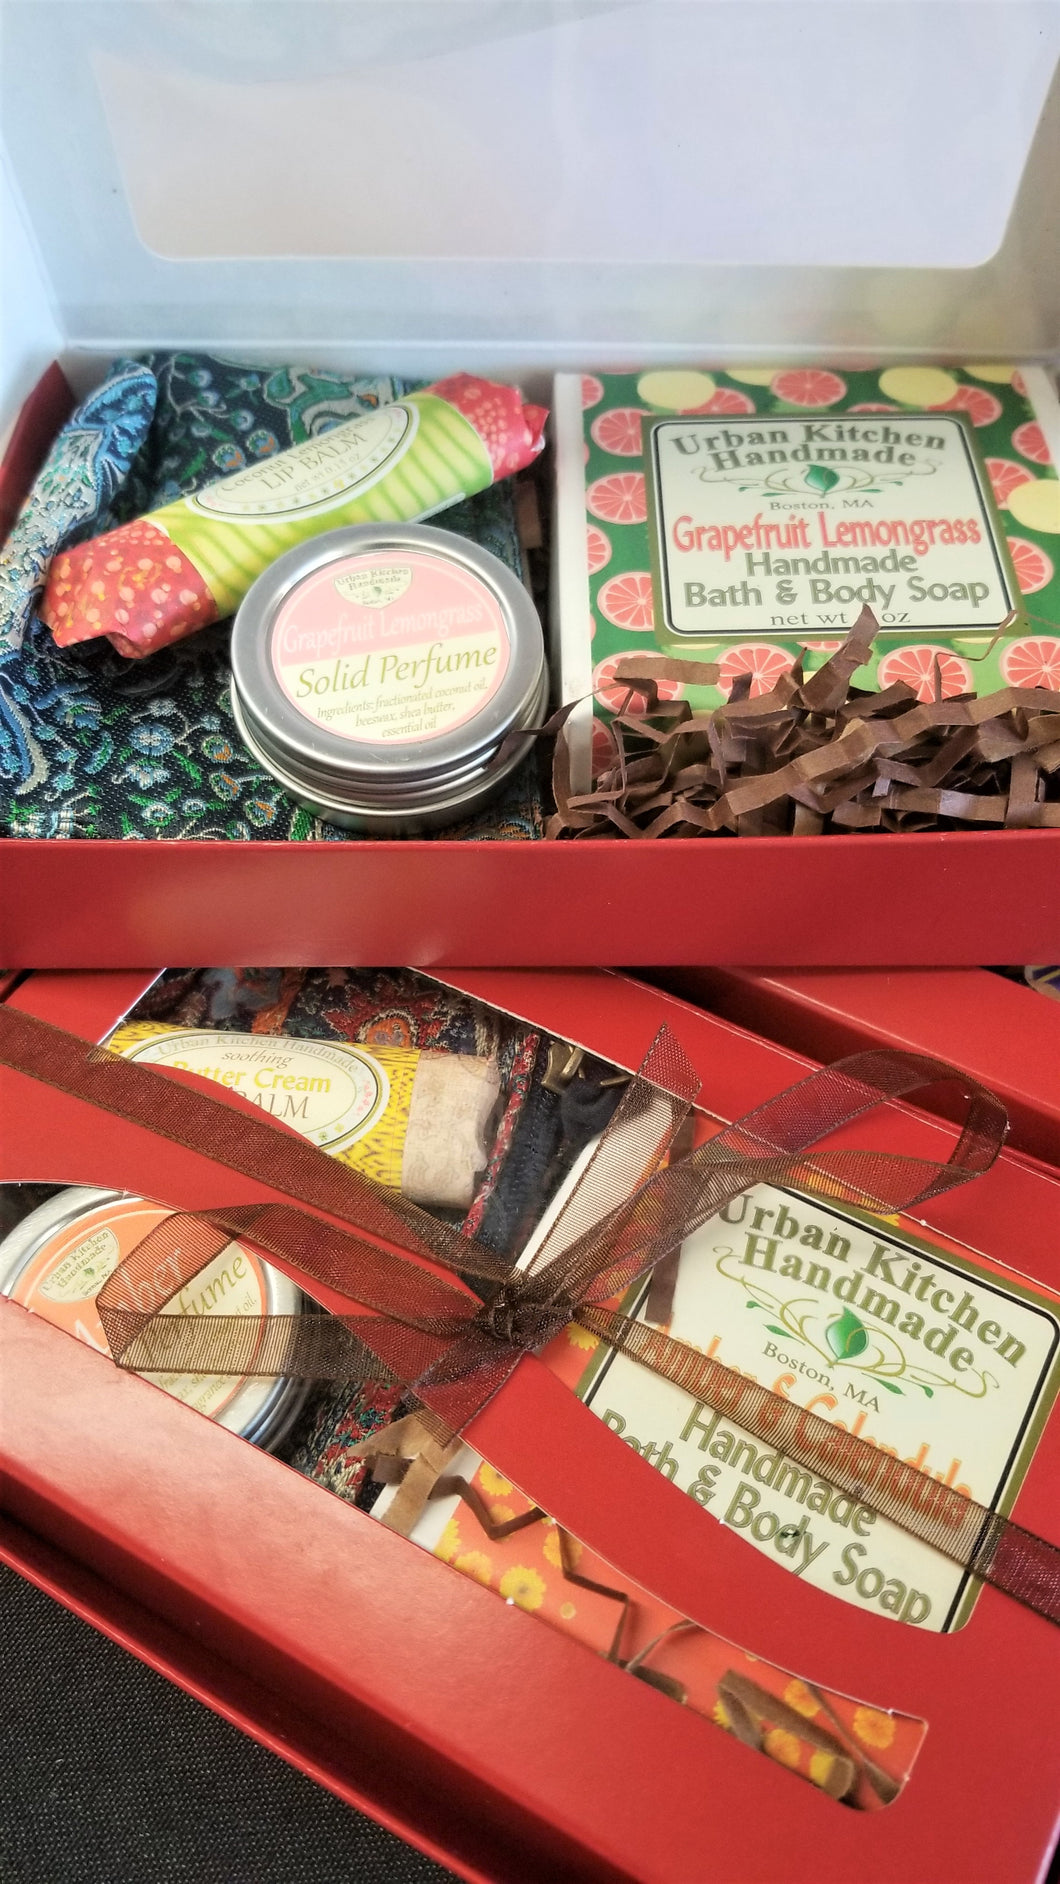 Urban Kitchen Red Gift Boxes